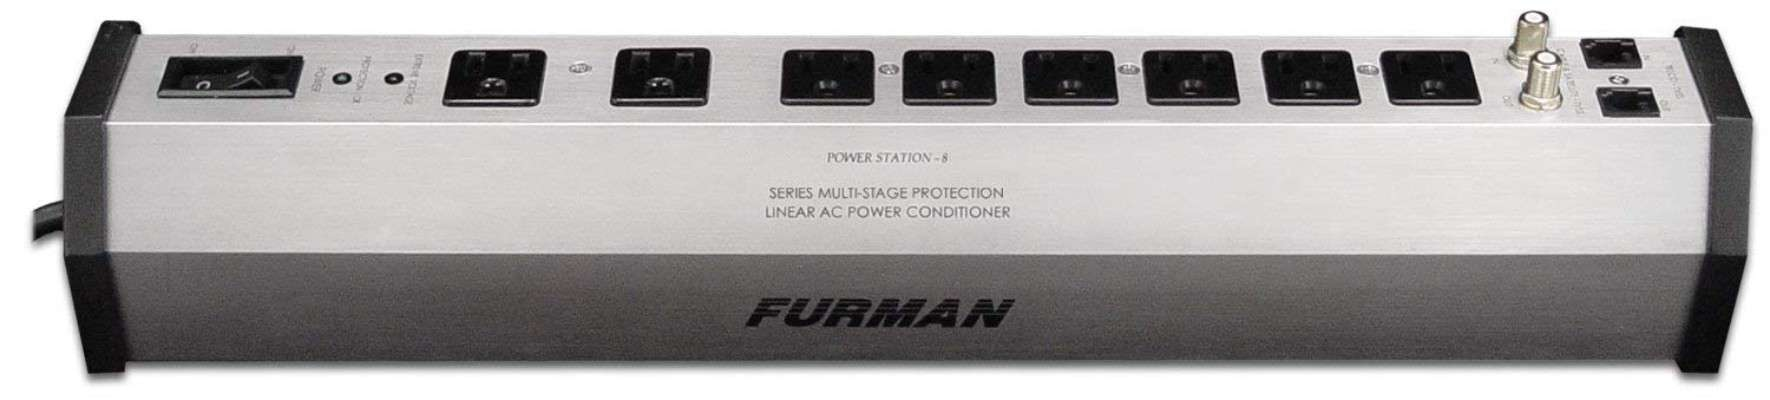 Furman PST8 SMP EVS LiFT 15-Amp Aluminum Chassis